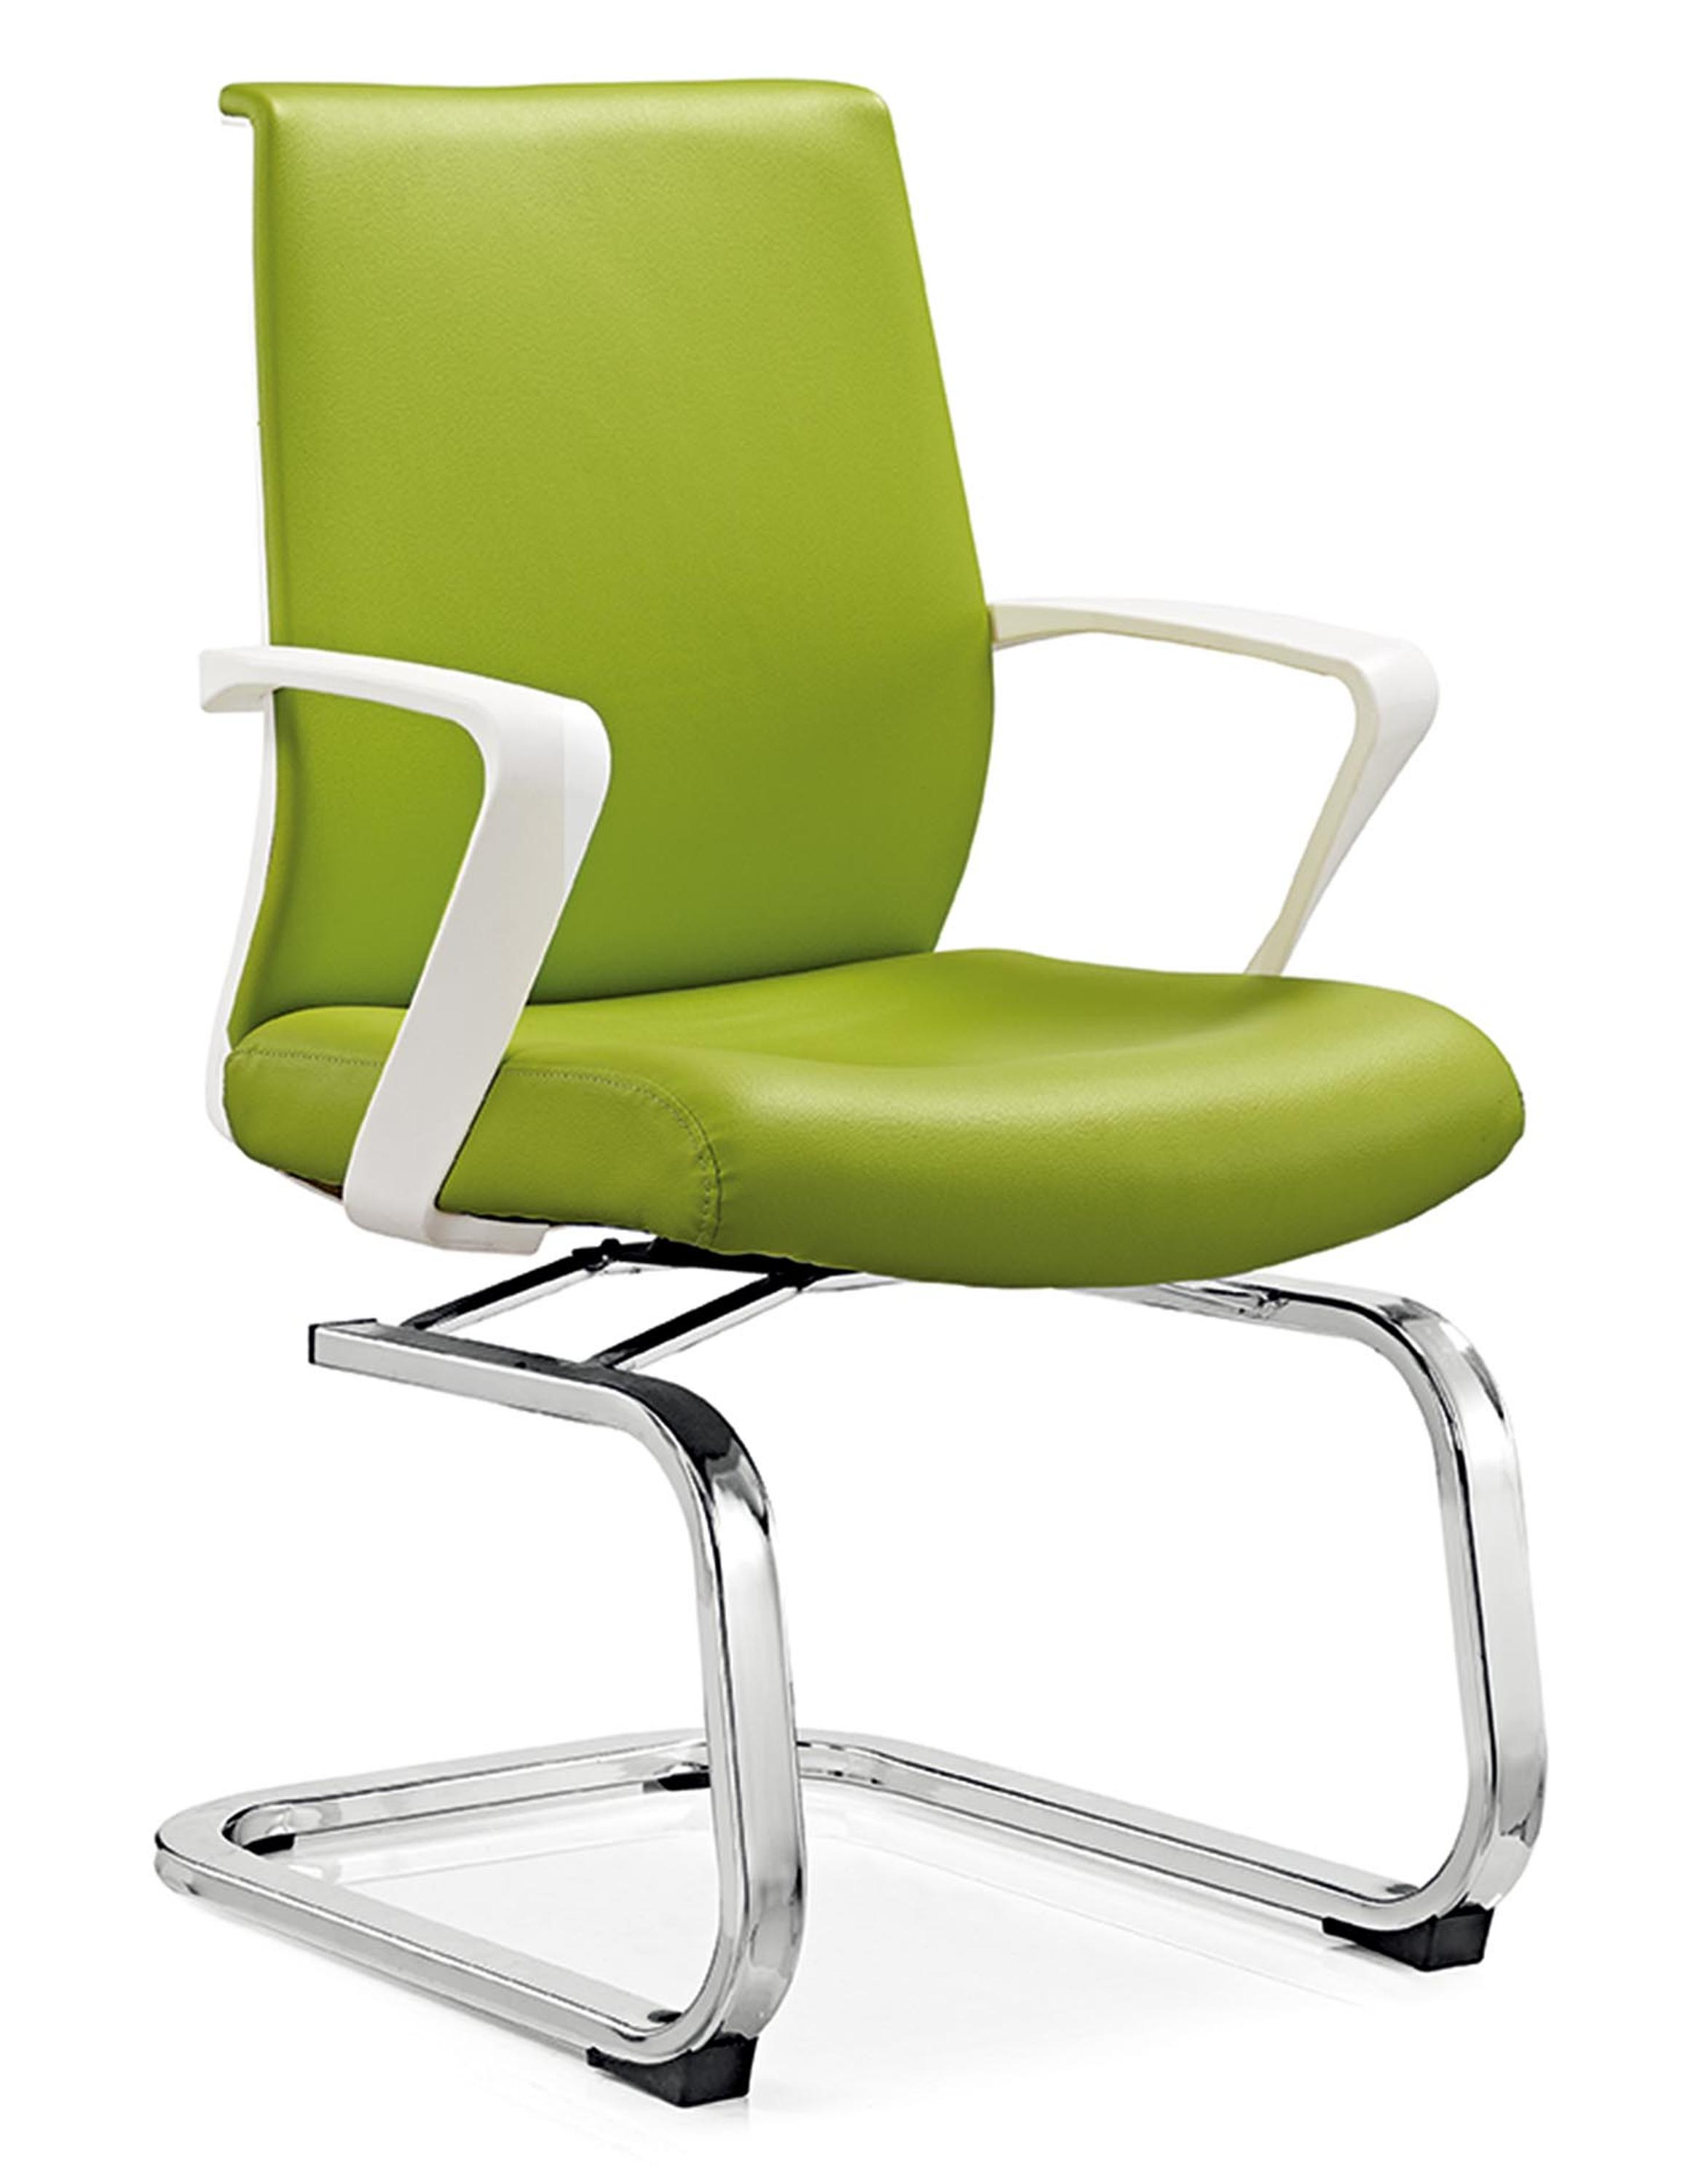 Comfy Office Chairs Comfy Non Rolling Office Chair Green Working Chairs Without Wheels Buy Comfy Chair Non Rolling Office Chair Green Chairs Without Wheels Product On